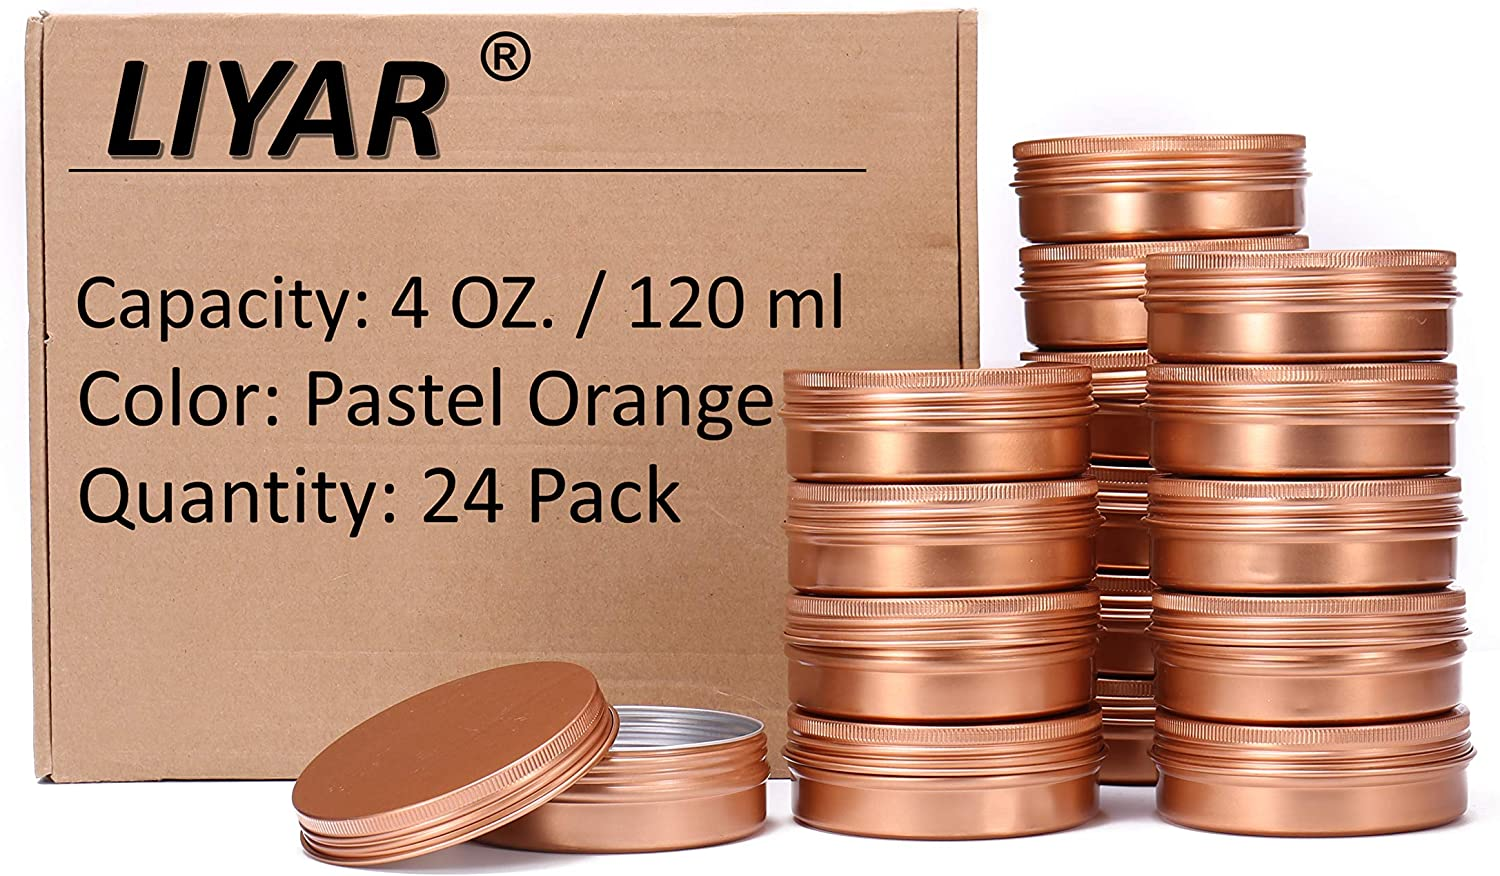 LIYAR 4oz Cans Tin Aluminum Metal Tin 24 Pack Metal Container Jars Aluminum Round Tins with Screw Lids for Salve, Spices or Candies(Pastel Orange)